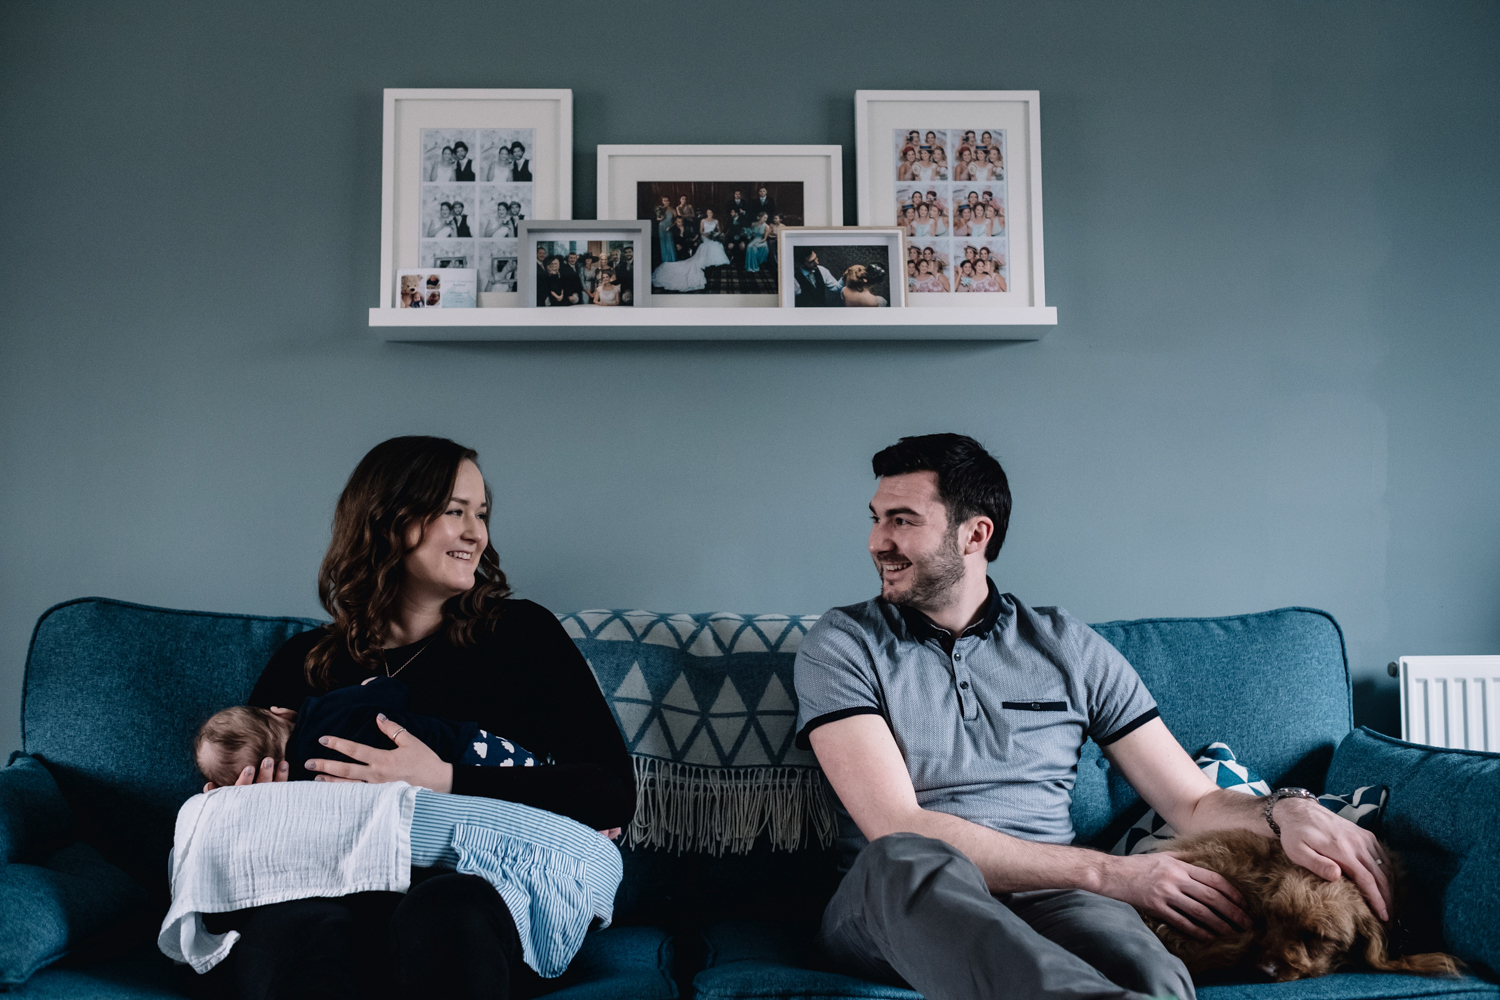 Mother and father sitting on sofa smiling at each other.